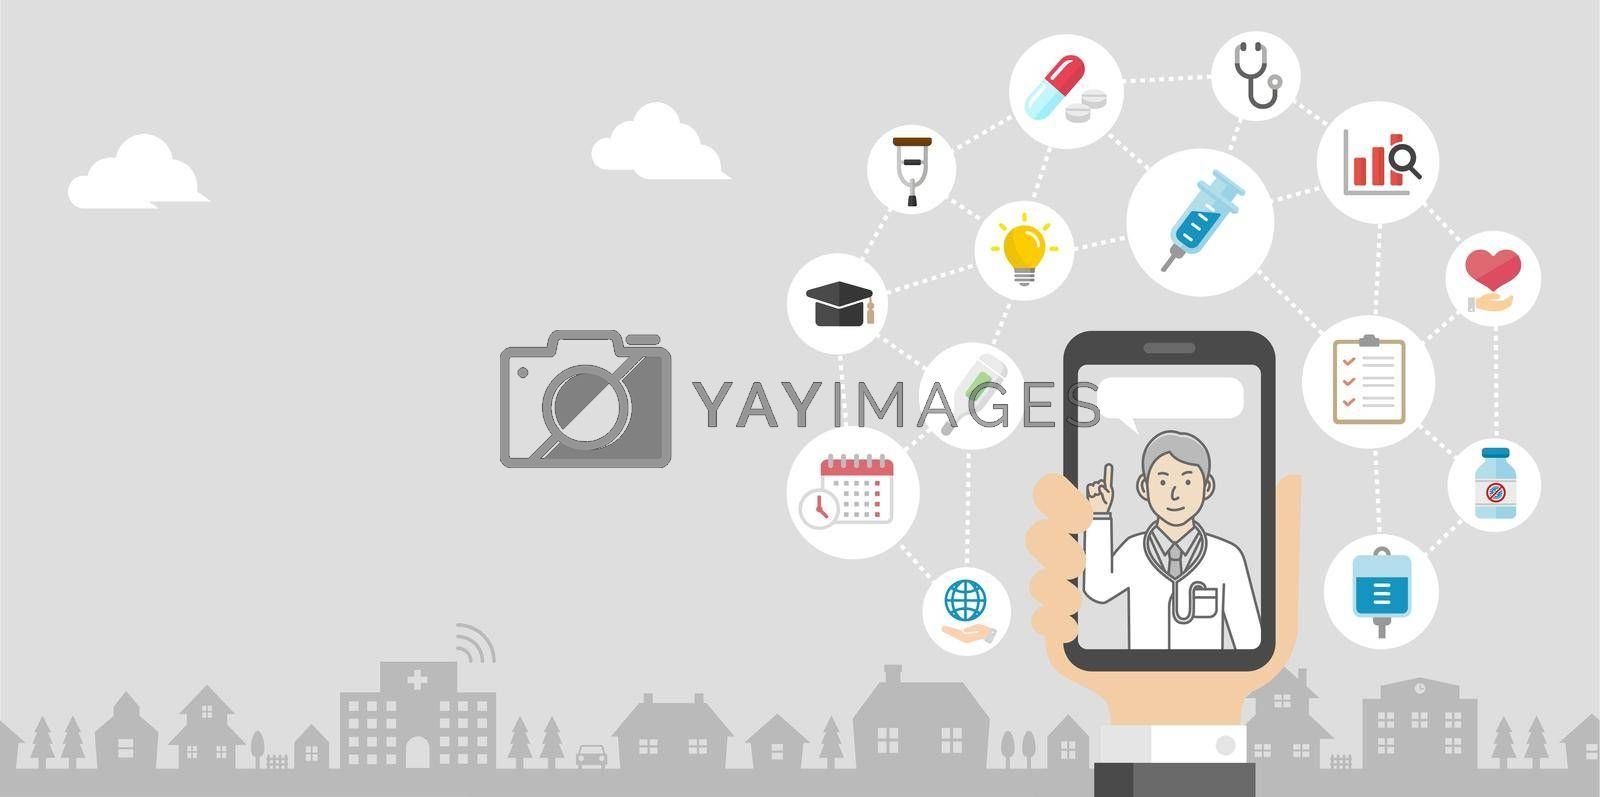 Royalty free image of Telemedicine,  telehealth concept banner illustration ( no text ) by barks